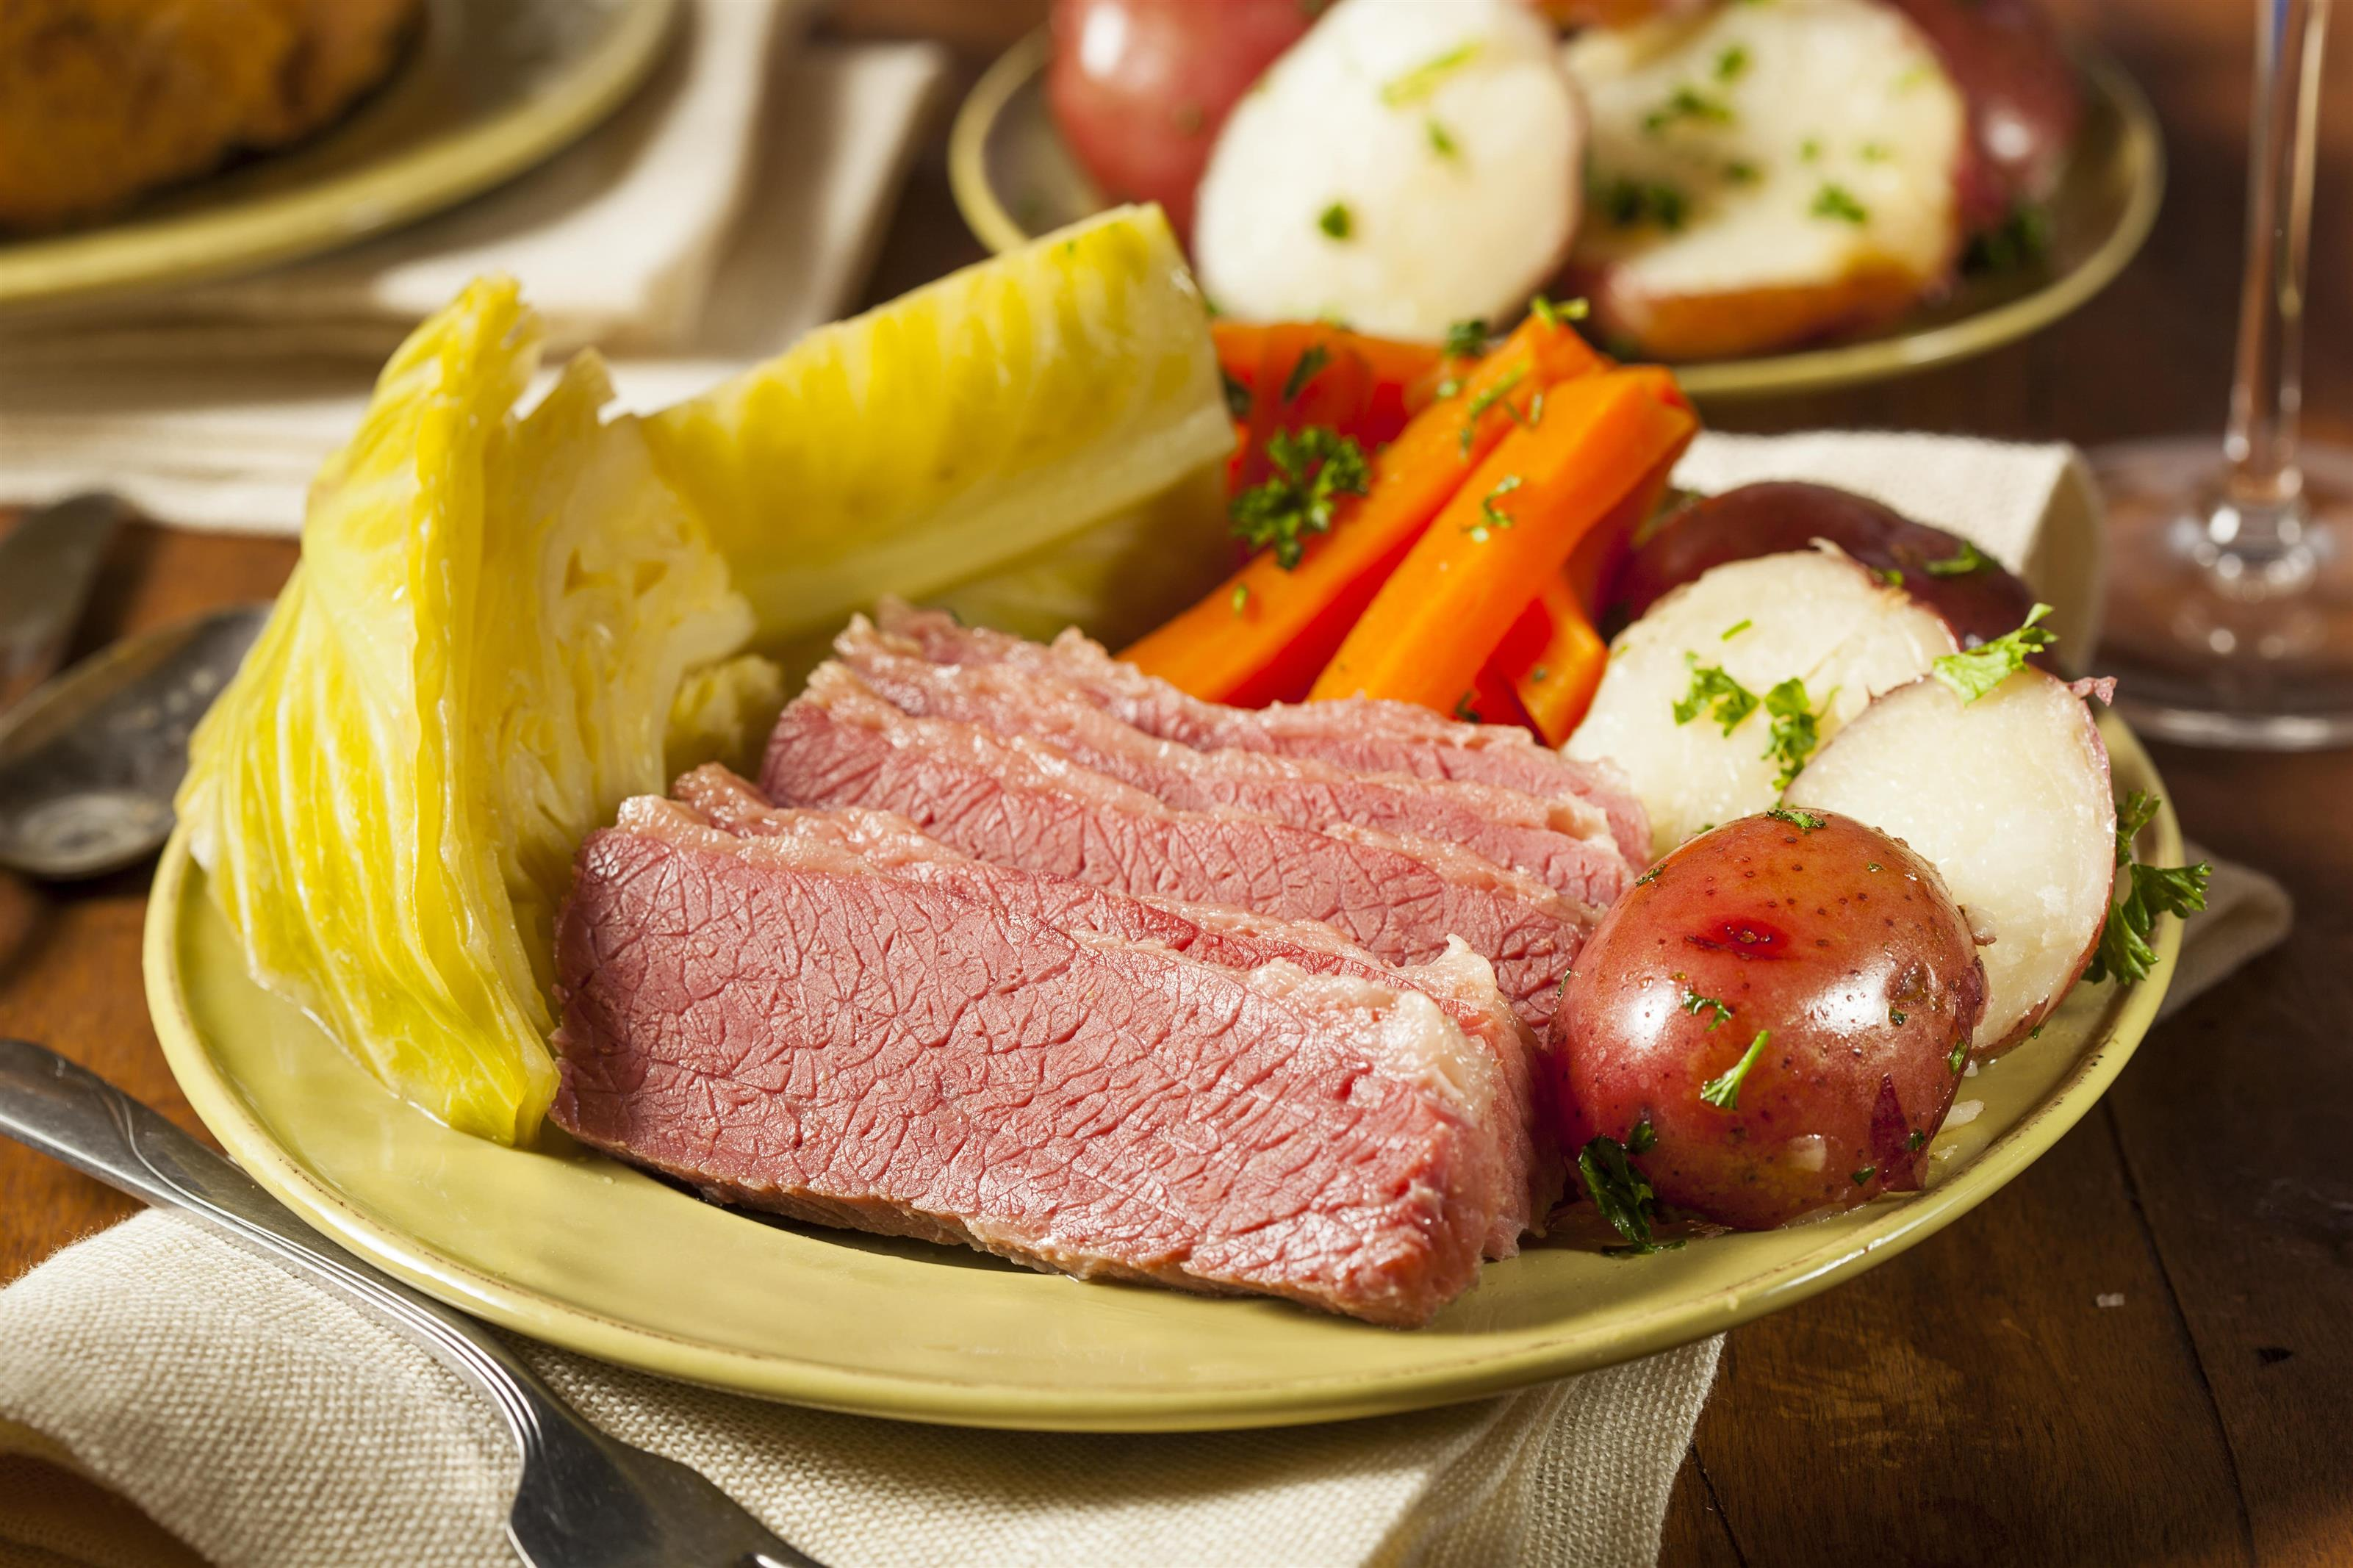 Dish of meat, and carrots, potatoes and cabbage surrounded by other plates with the same food